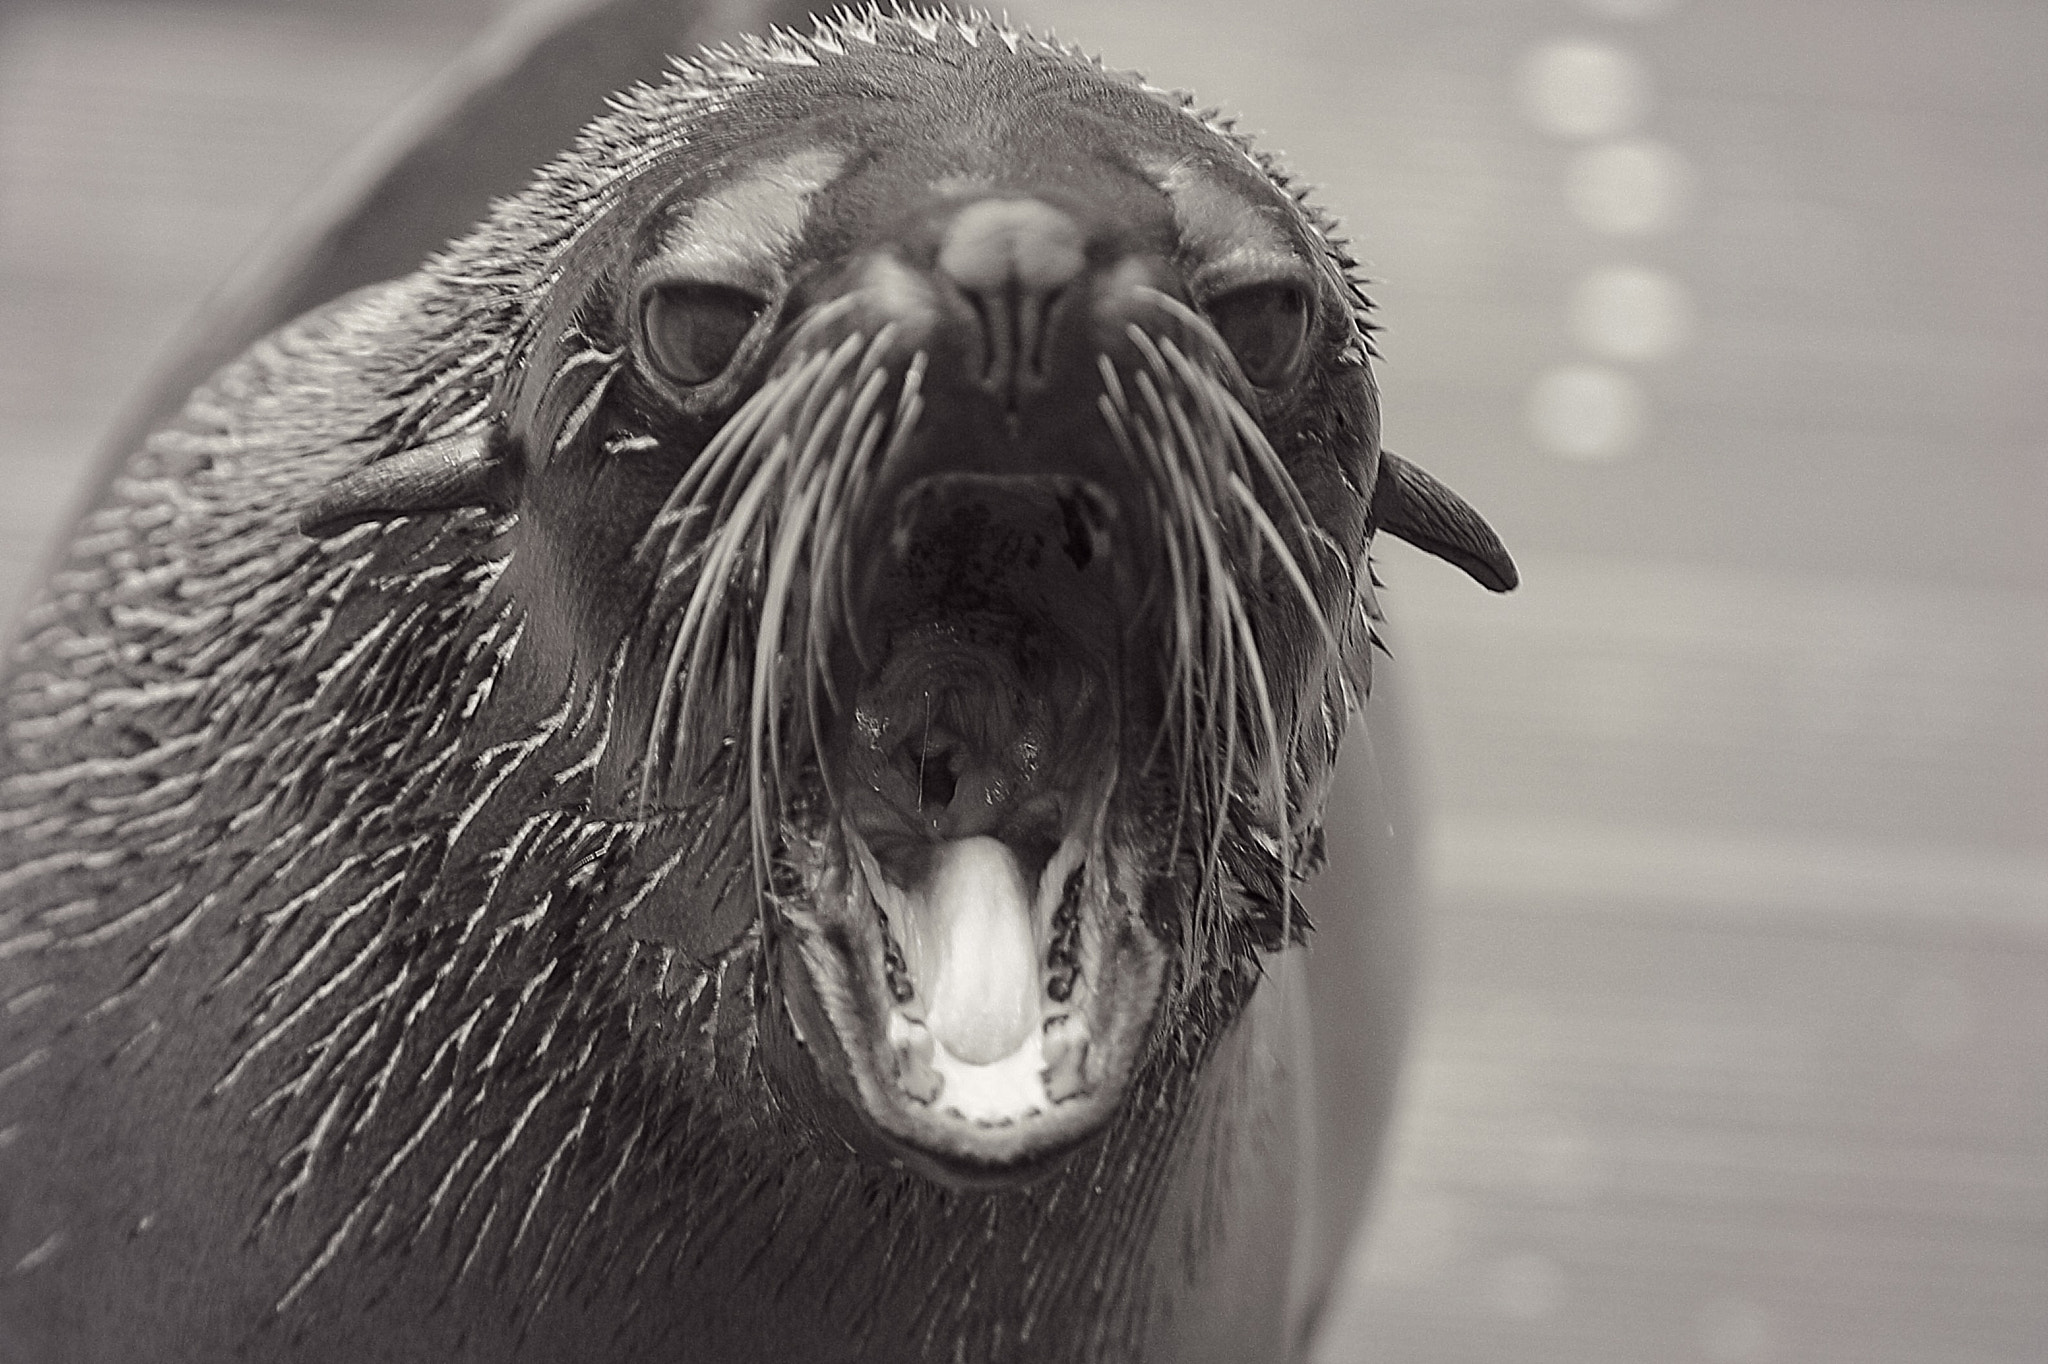 Photograph Pinniped by Eva Lechner on 500px